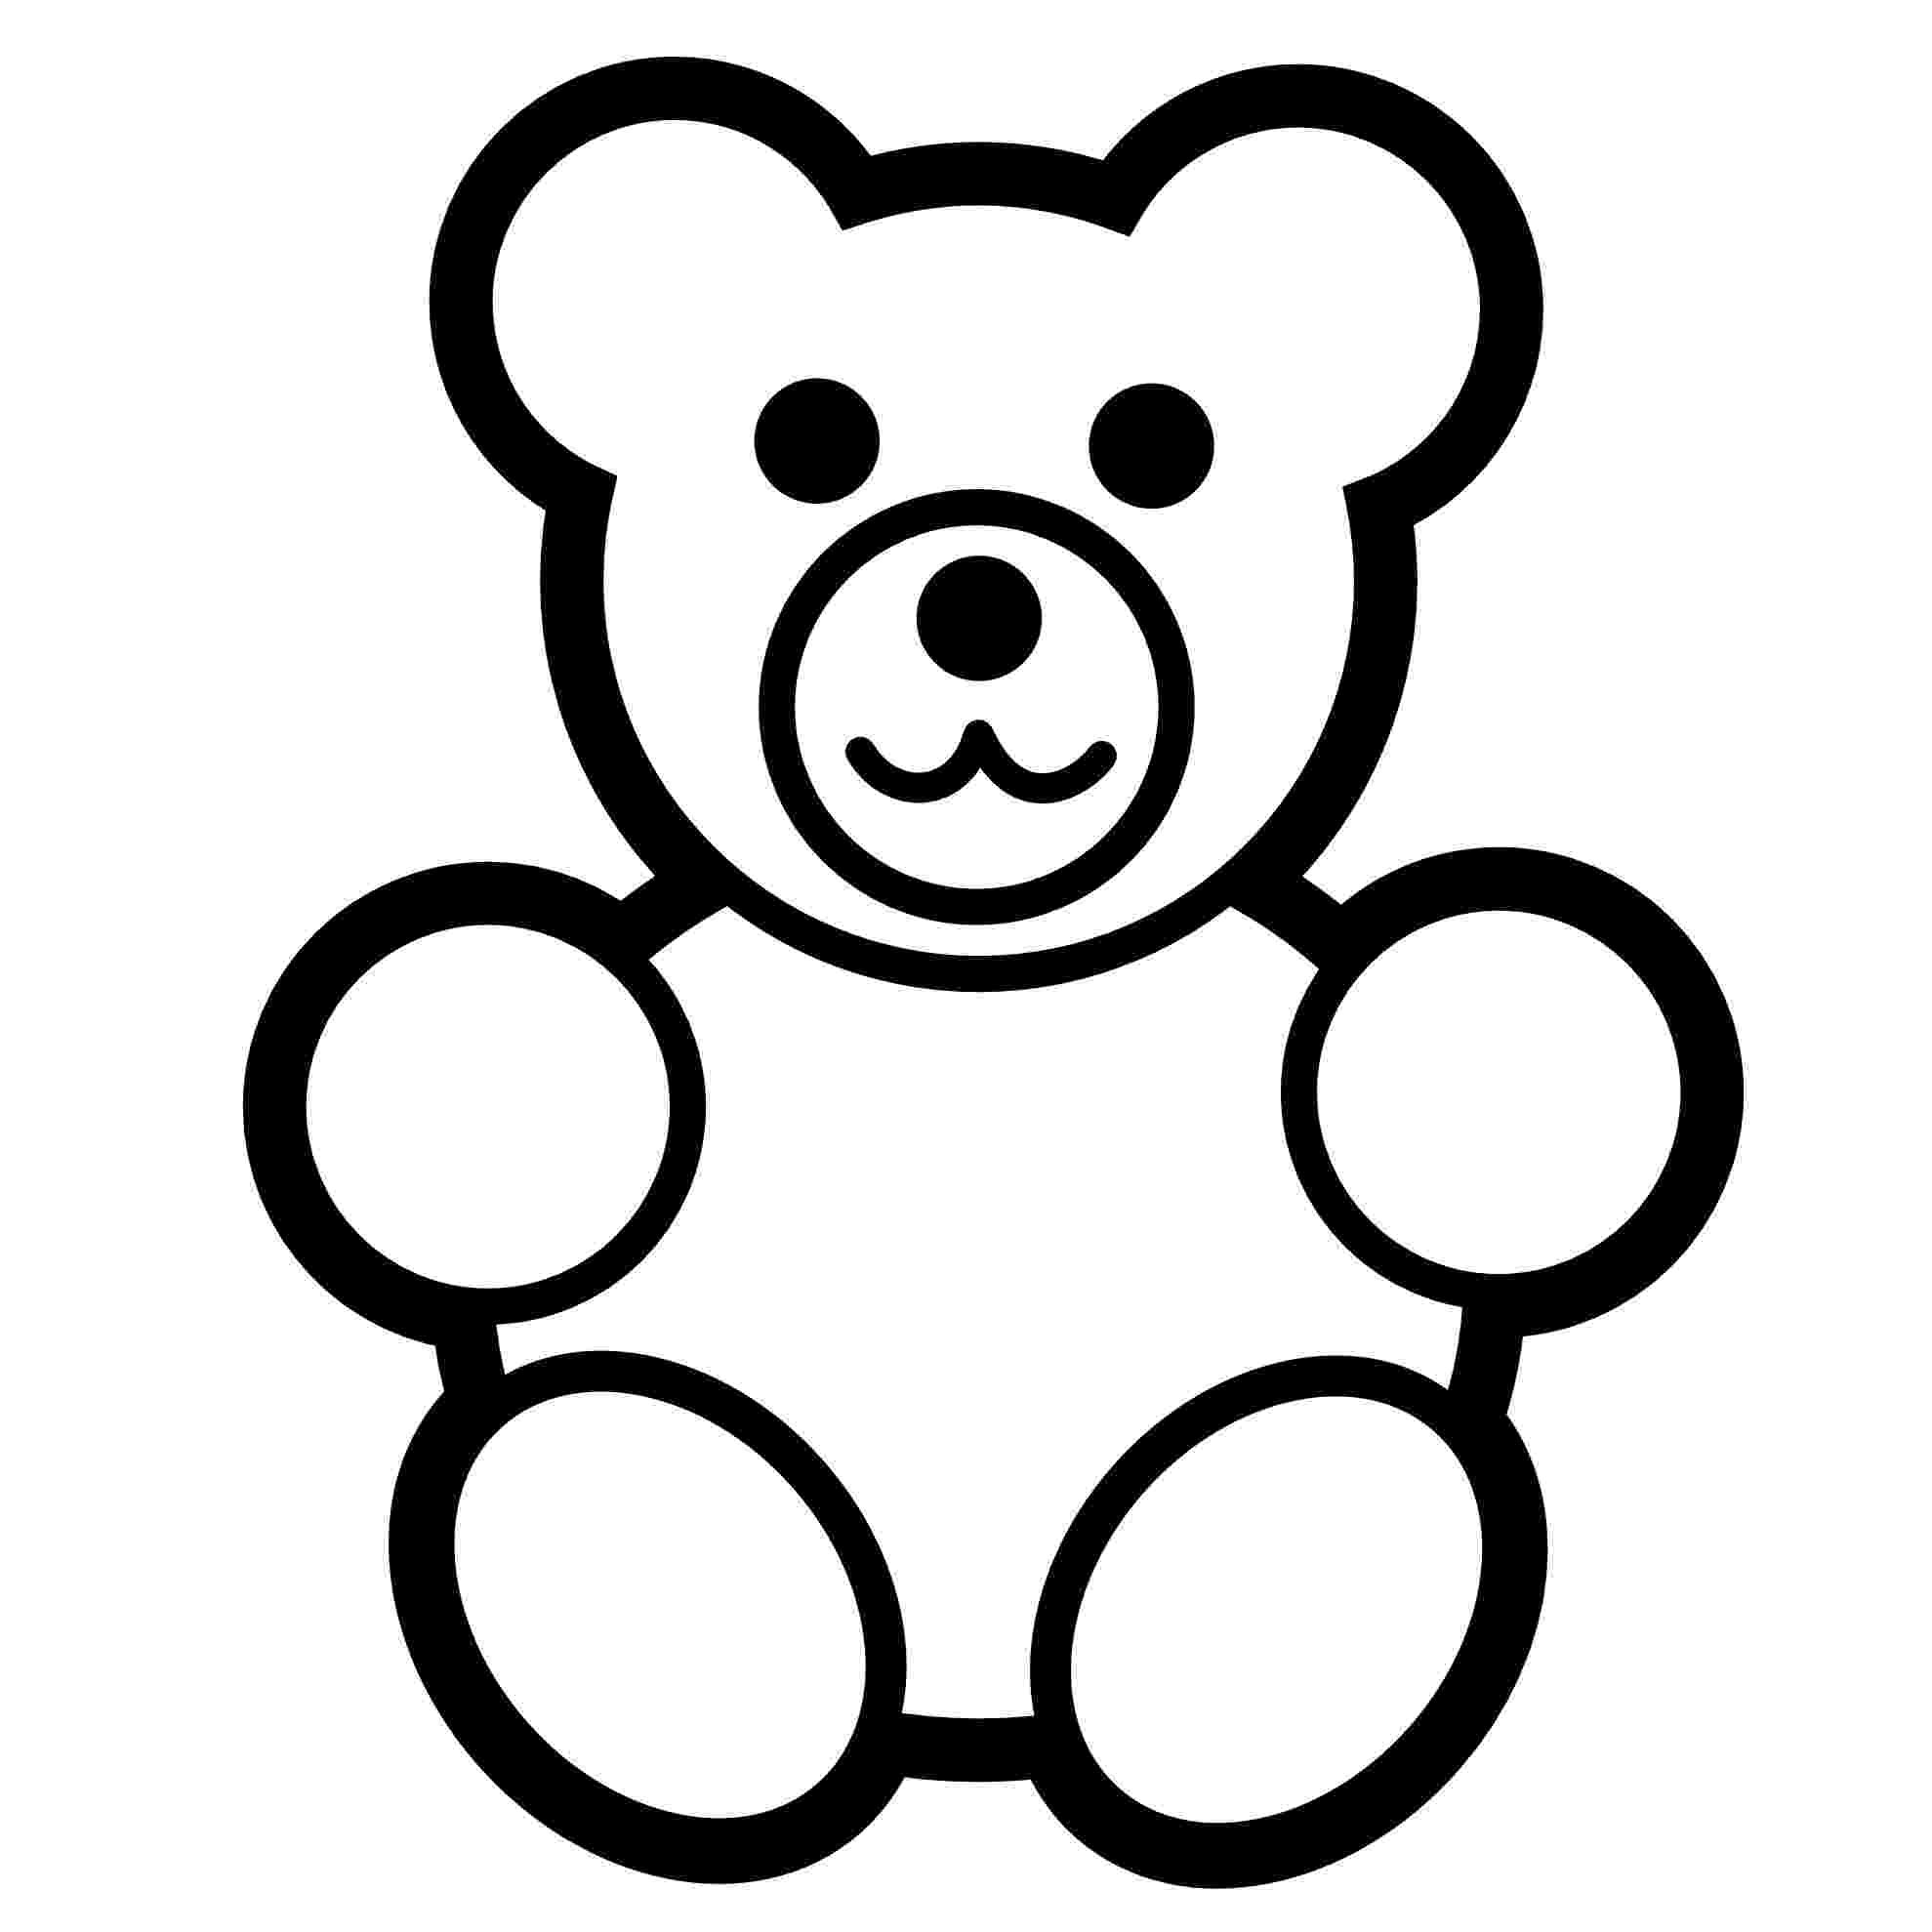 coloring sheet teddy bear printable teddy bear coloring pages for kids cool2bkids teddy sheet coloring bear